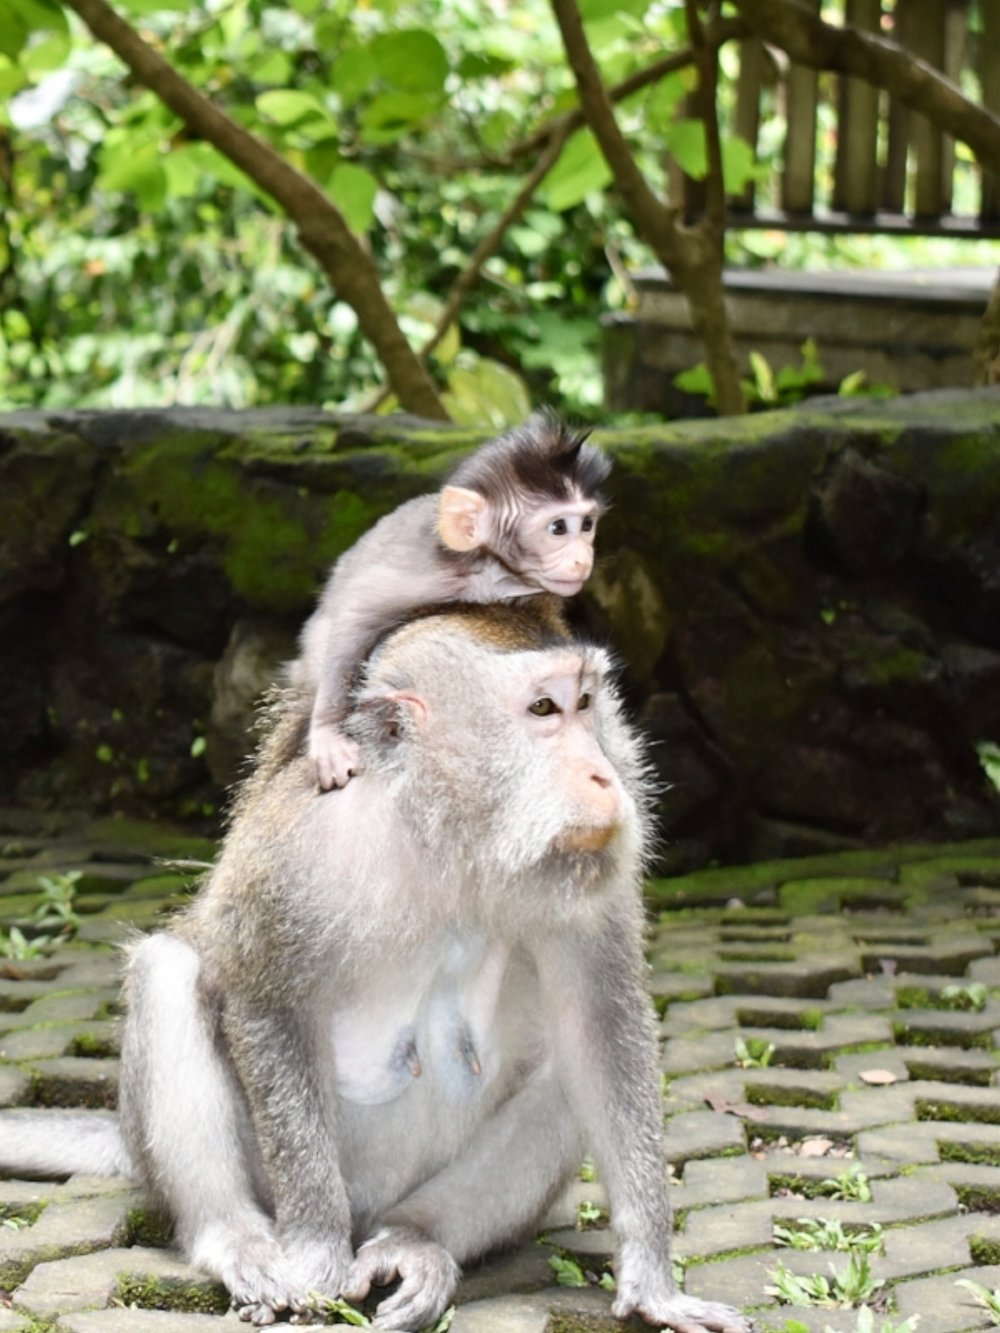 Mama and baby monkeys at the Sacred Monkey Forest Sanctuary